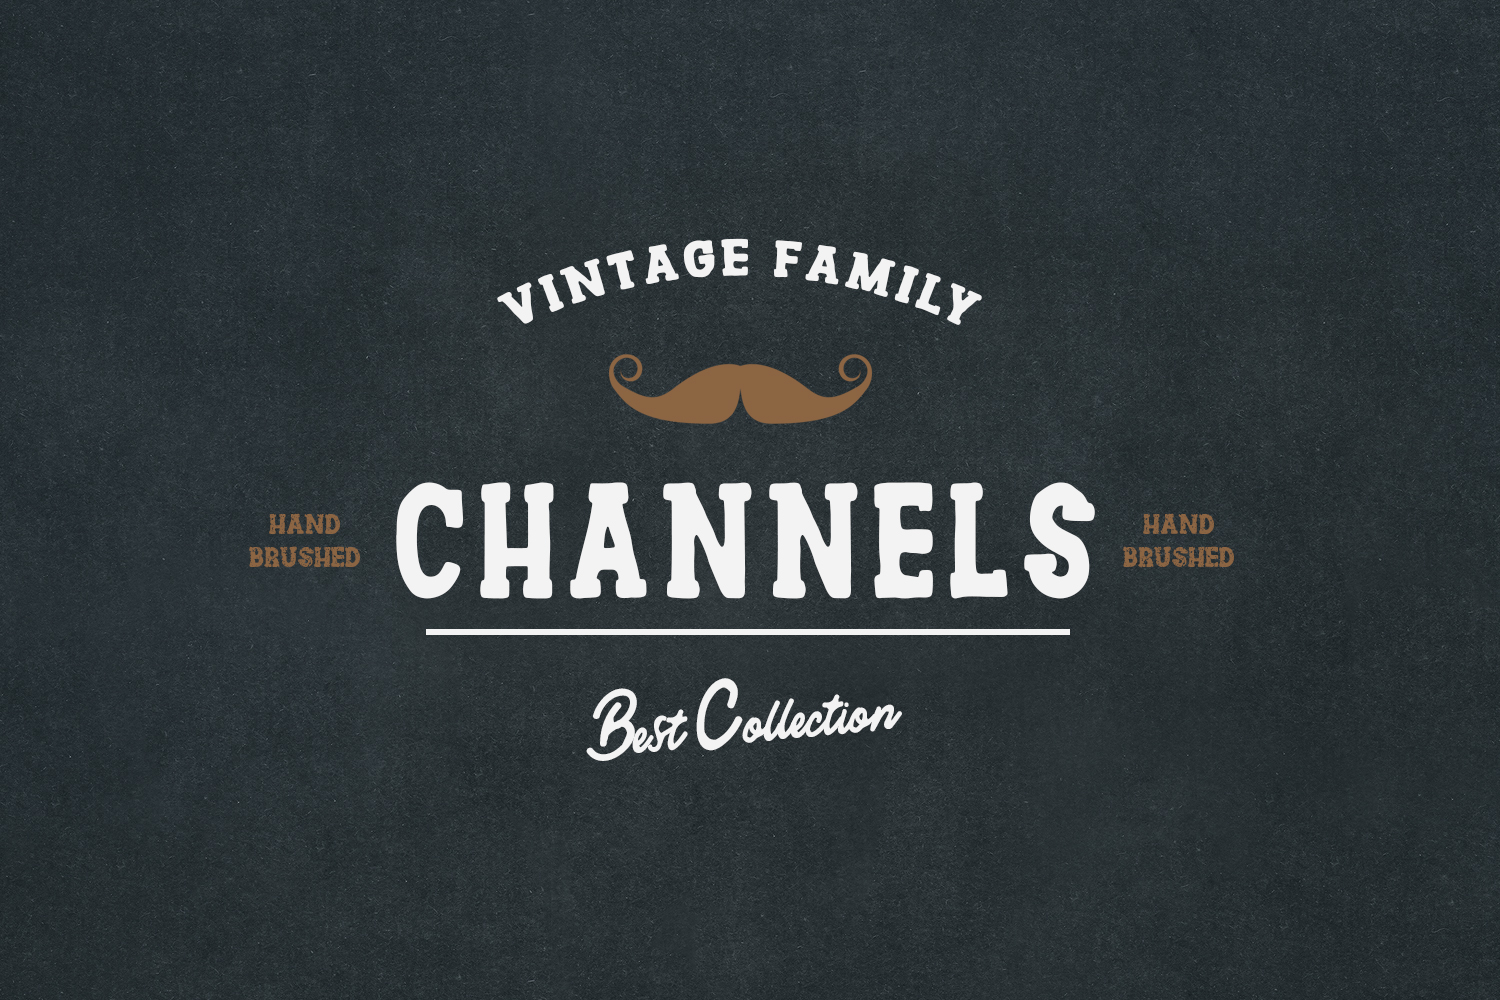 Channles - Family Vintage Font example image 2